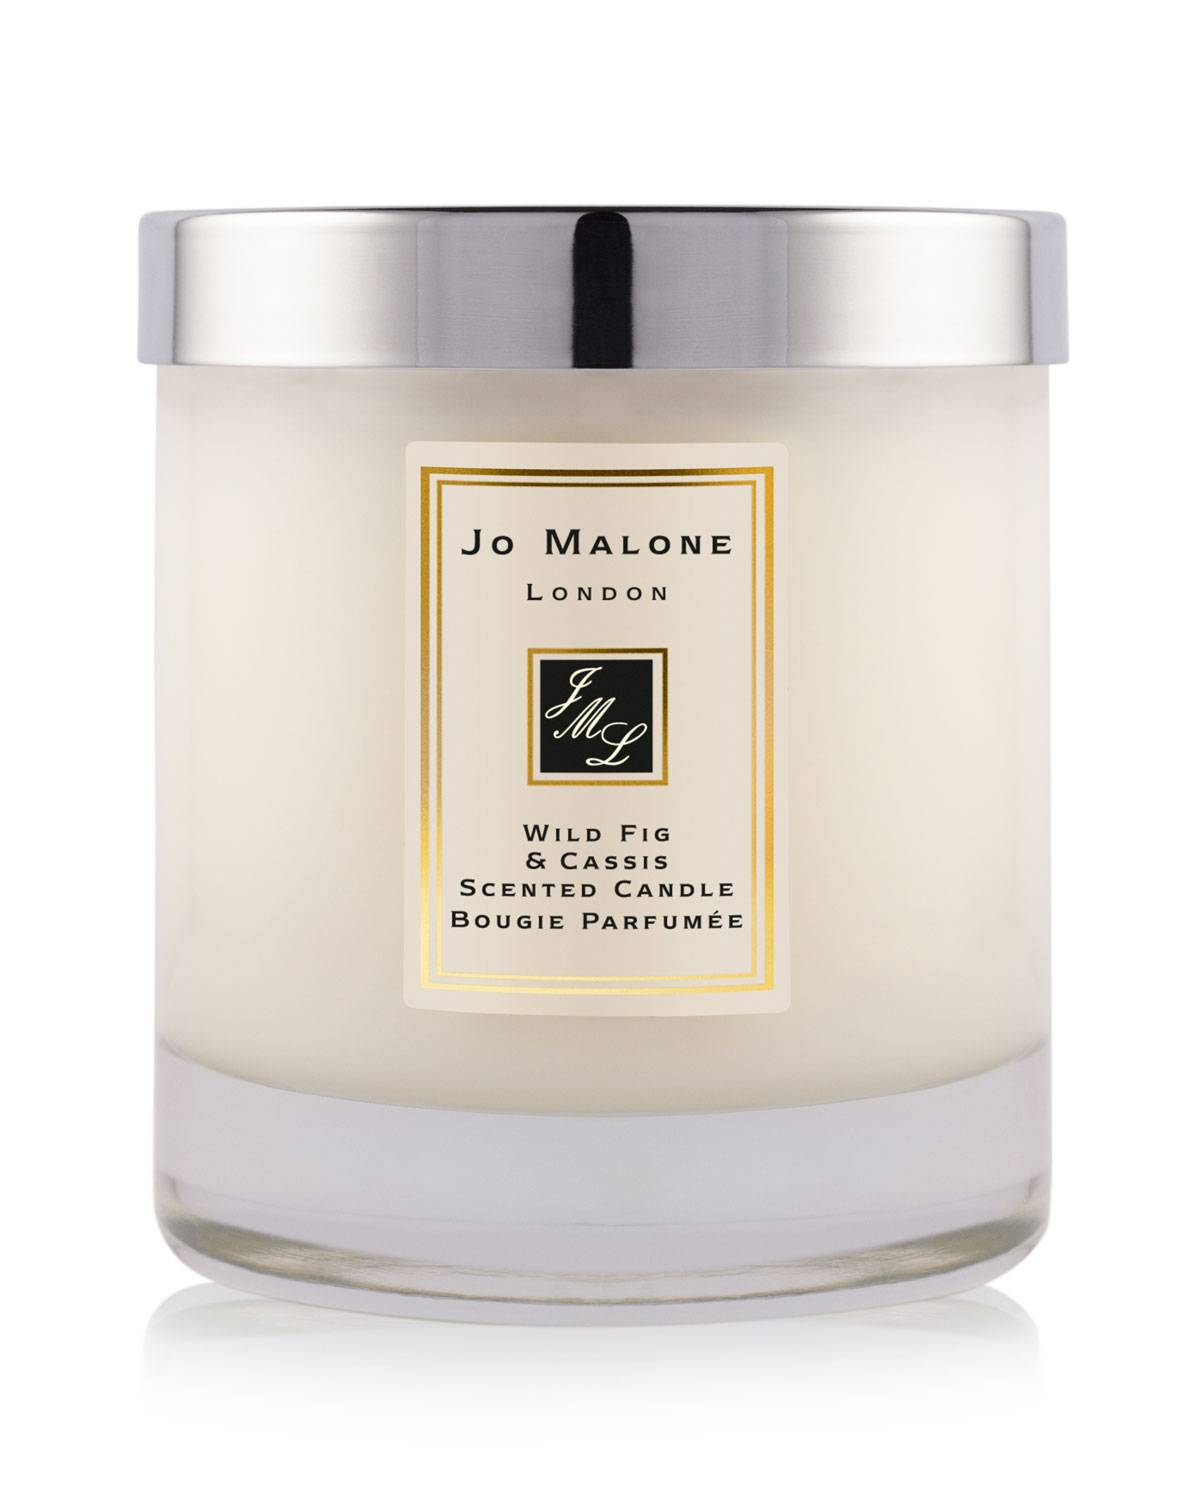 Jo Malone London Wild Fig & Cassis Home Candle, 7 oz.  - female